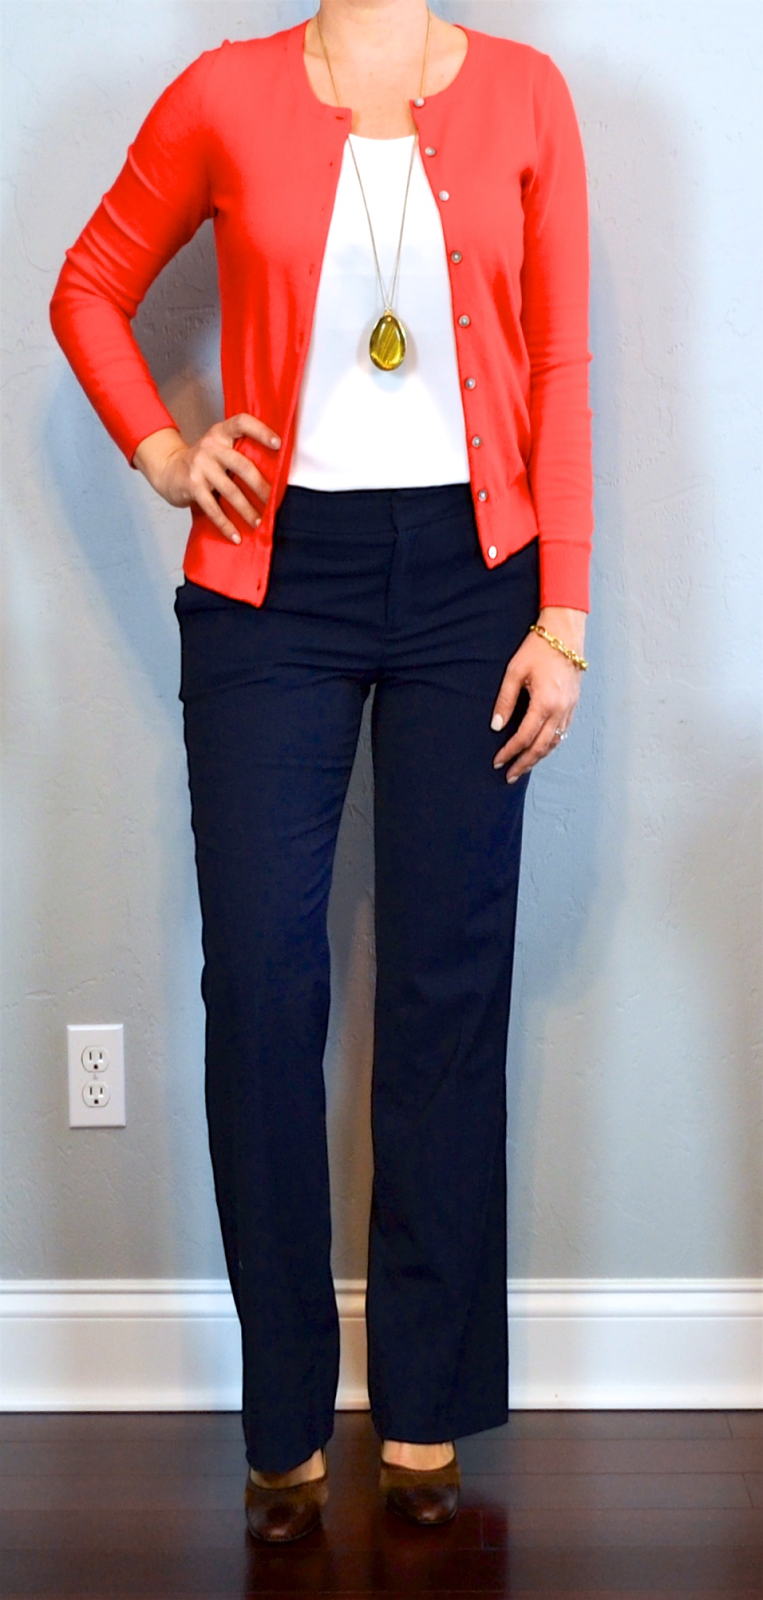 Outfit Posts Red Cardigan White Camisole Navy Pants Brown Mary Janes